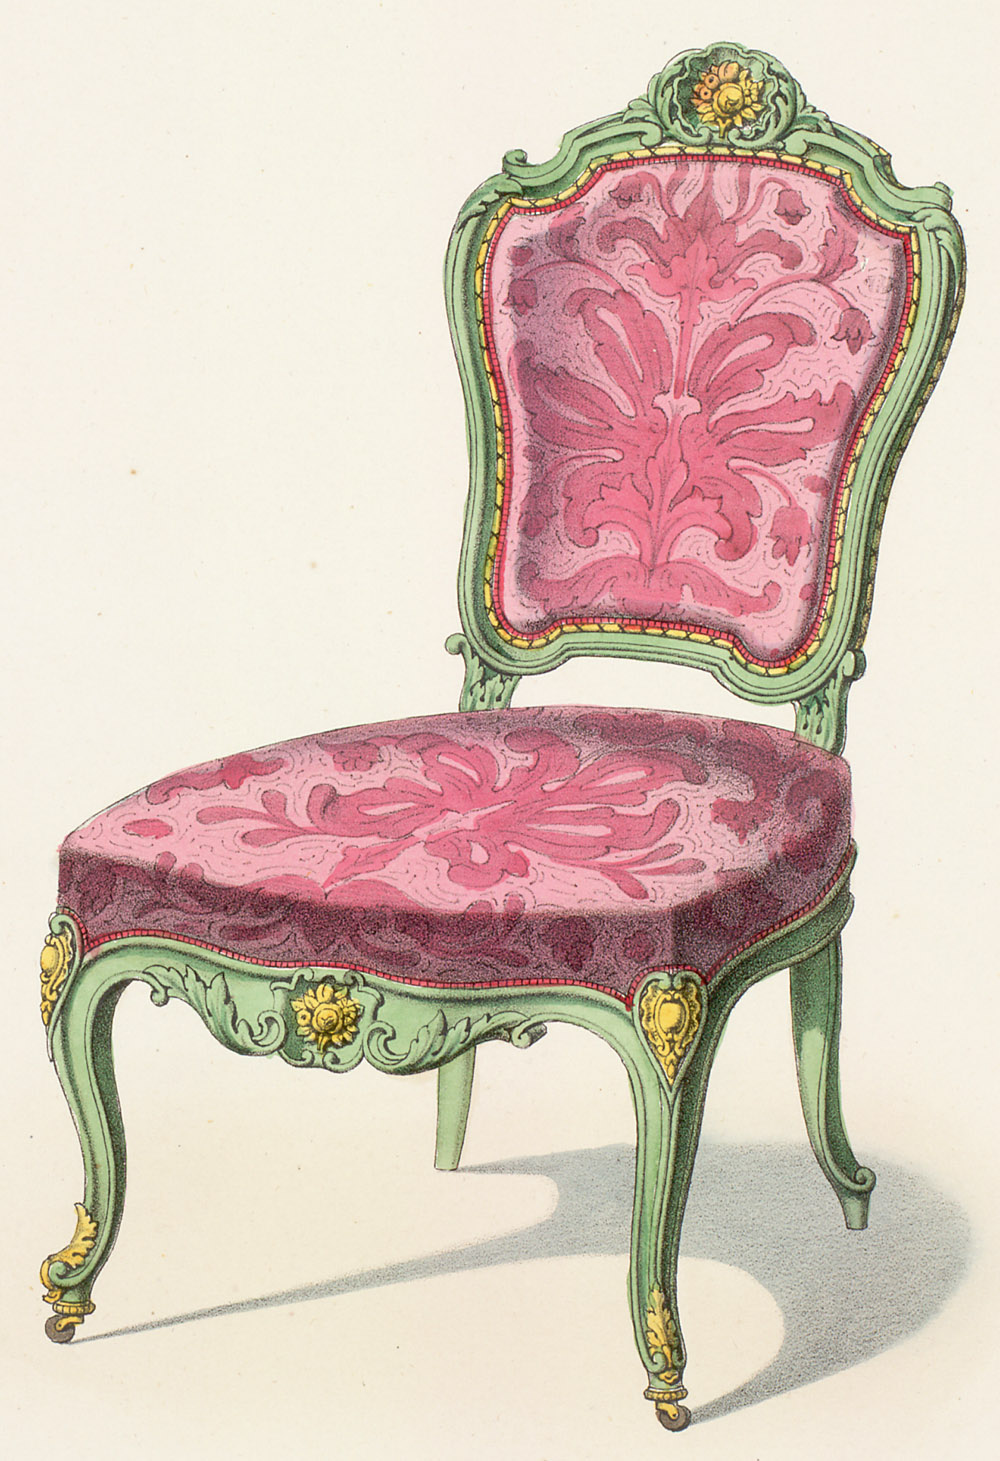 antique furniture on pinterest clip art image transfers and victorian furniture. Black Bedroom Furniture Sets. Home Design Ideas